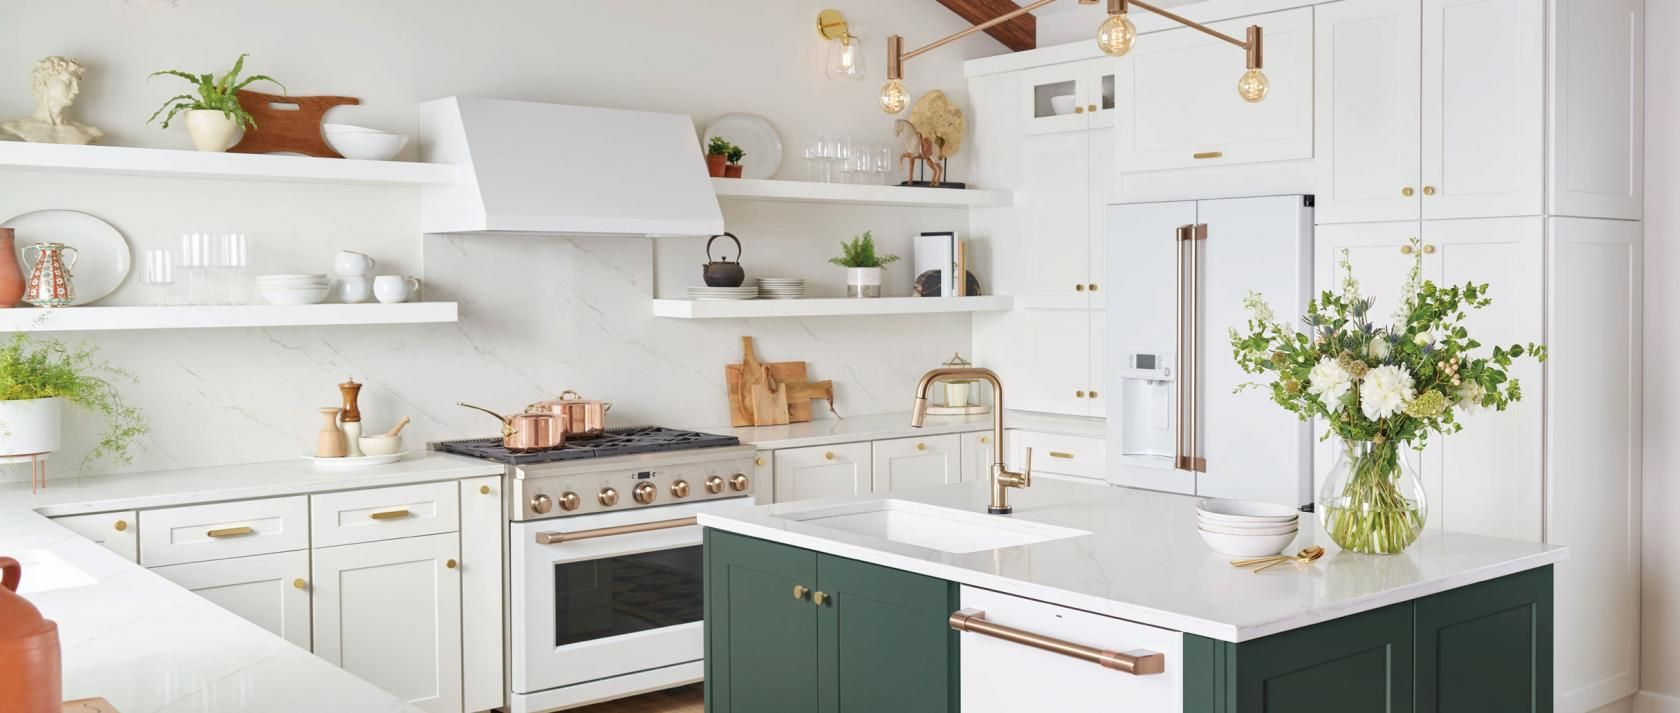 White Matte Kitchen With Brushed Bronze Stainless Steel And Copper Brushed Copper Handles And Latest Kitchen Trends Kitchen Trends White Kitchen Appliances